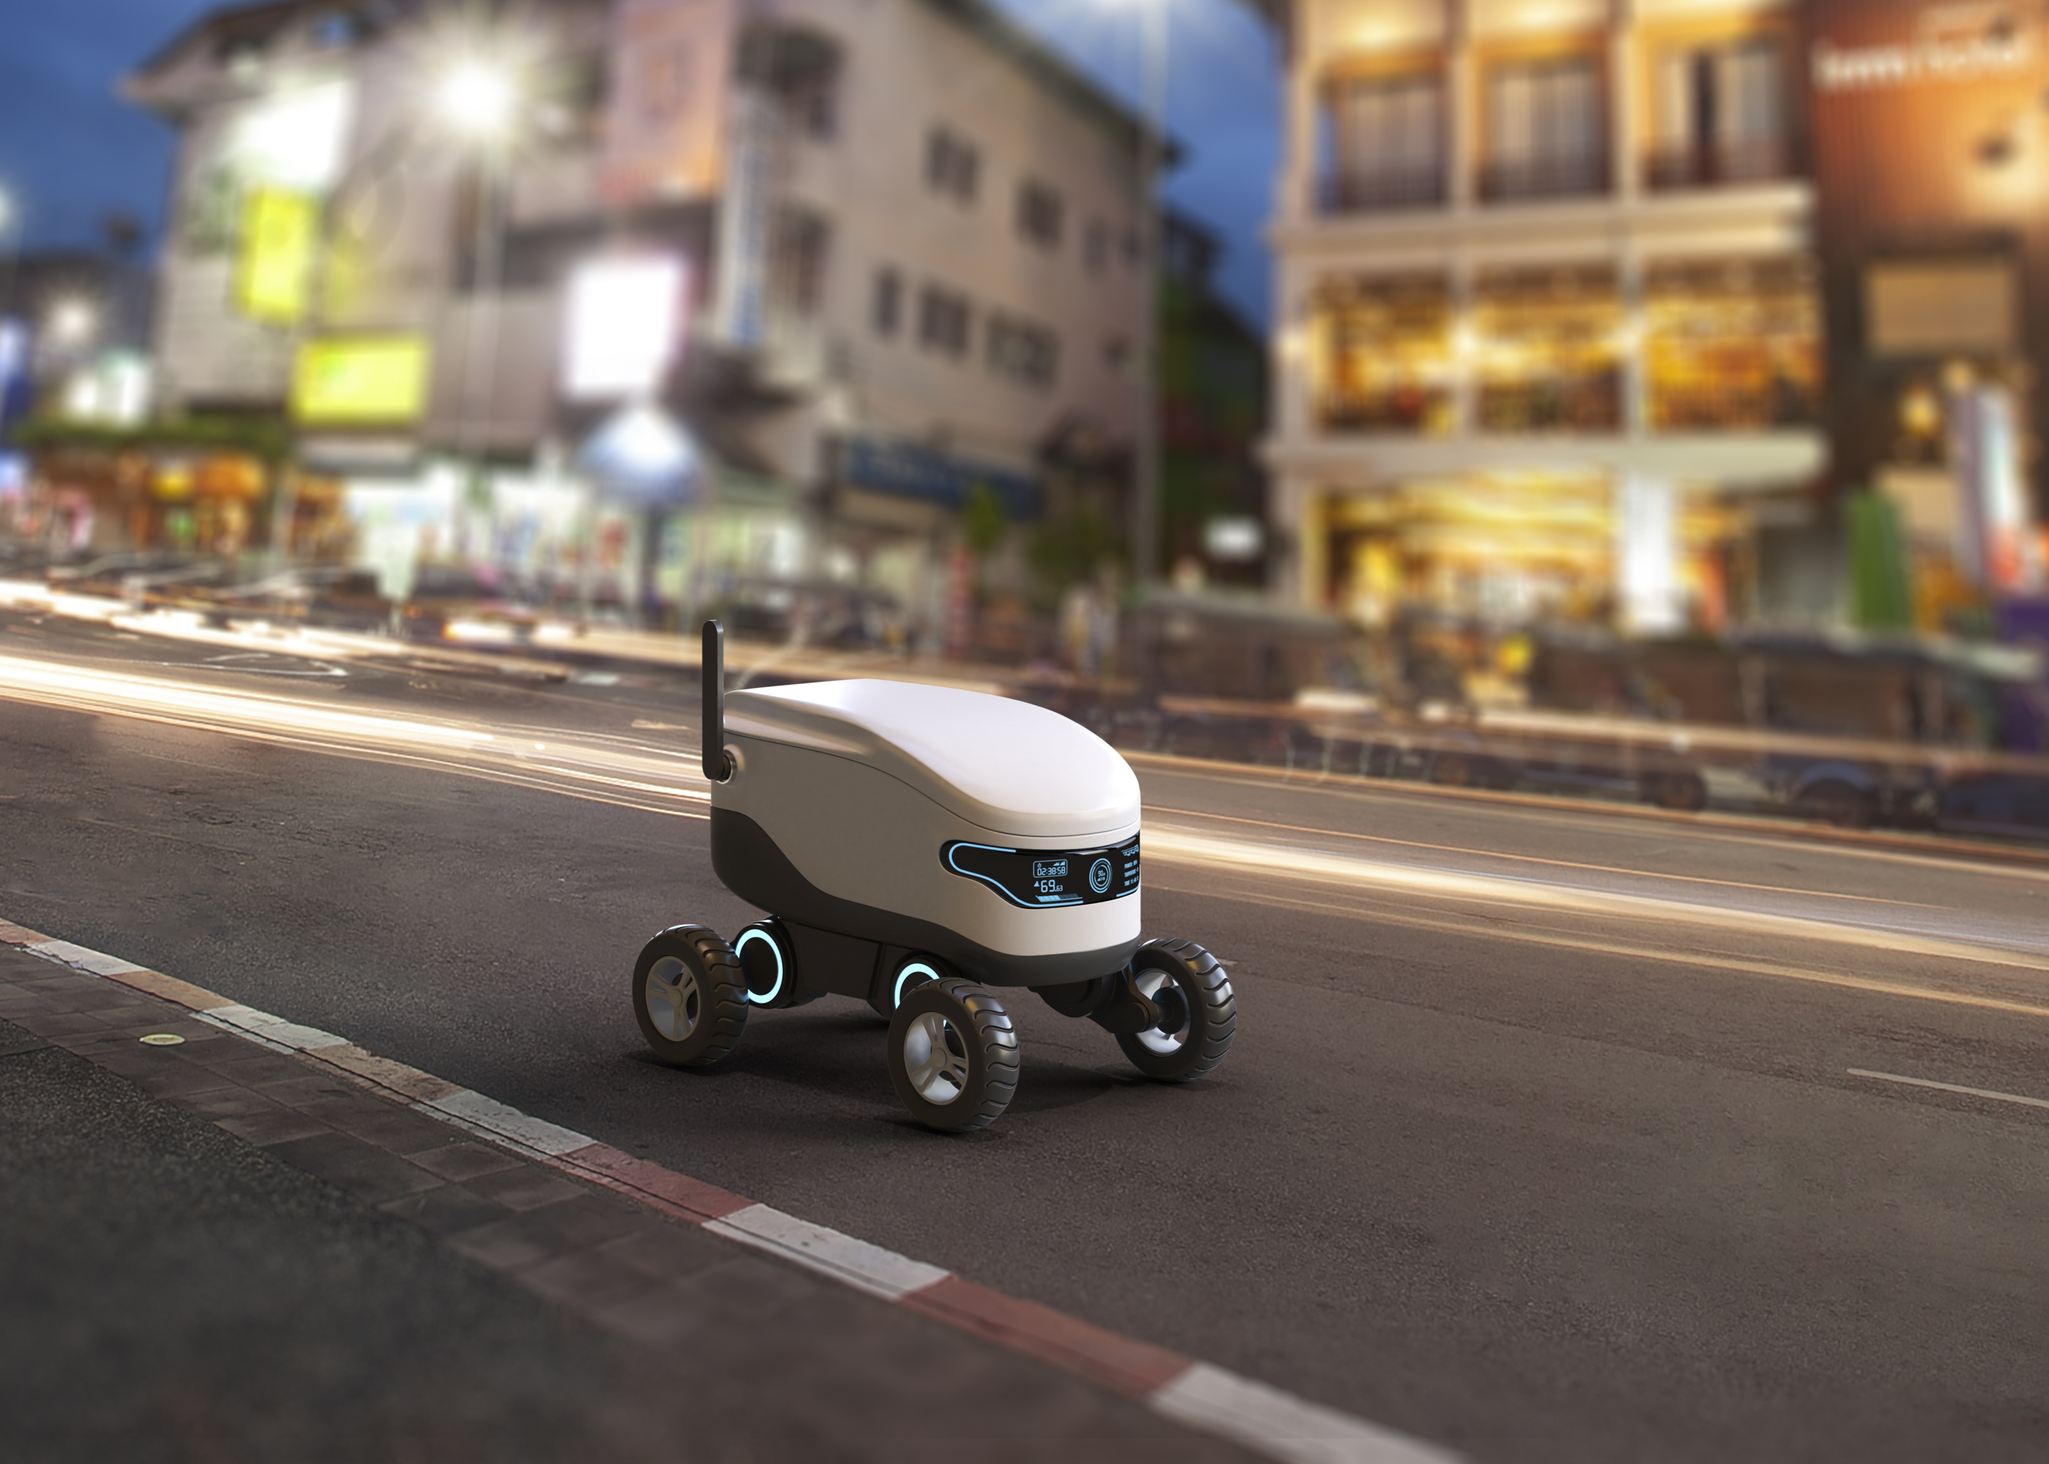 Self-driving delivery robot concept. 3D illustration. Image credit: sarawuth702, iStock